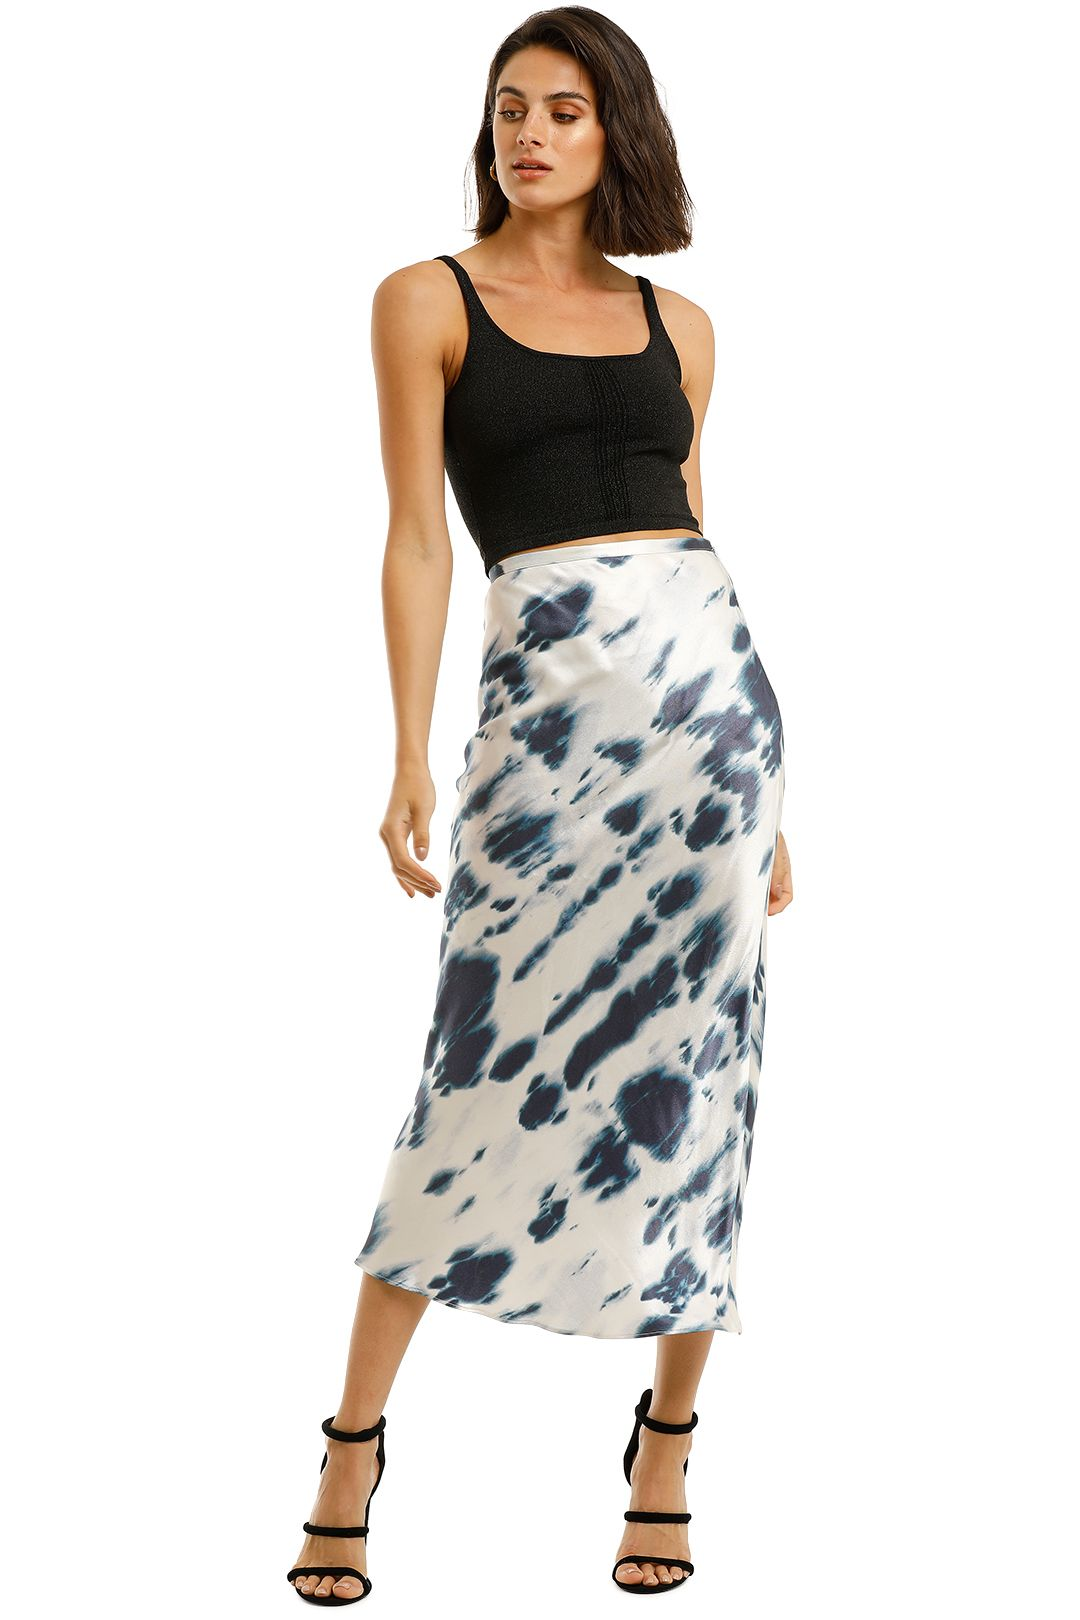 Shona-Joy-Palmar-Bias-Midi-Skirt-Ivory-Ink-Front